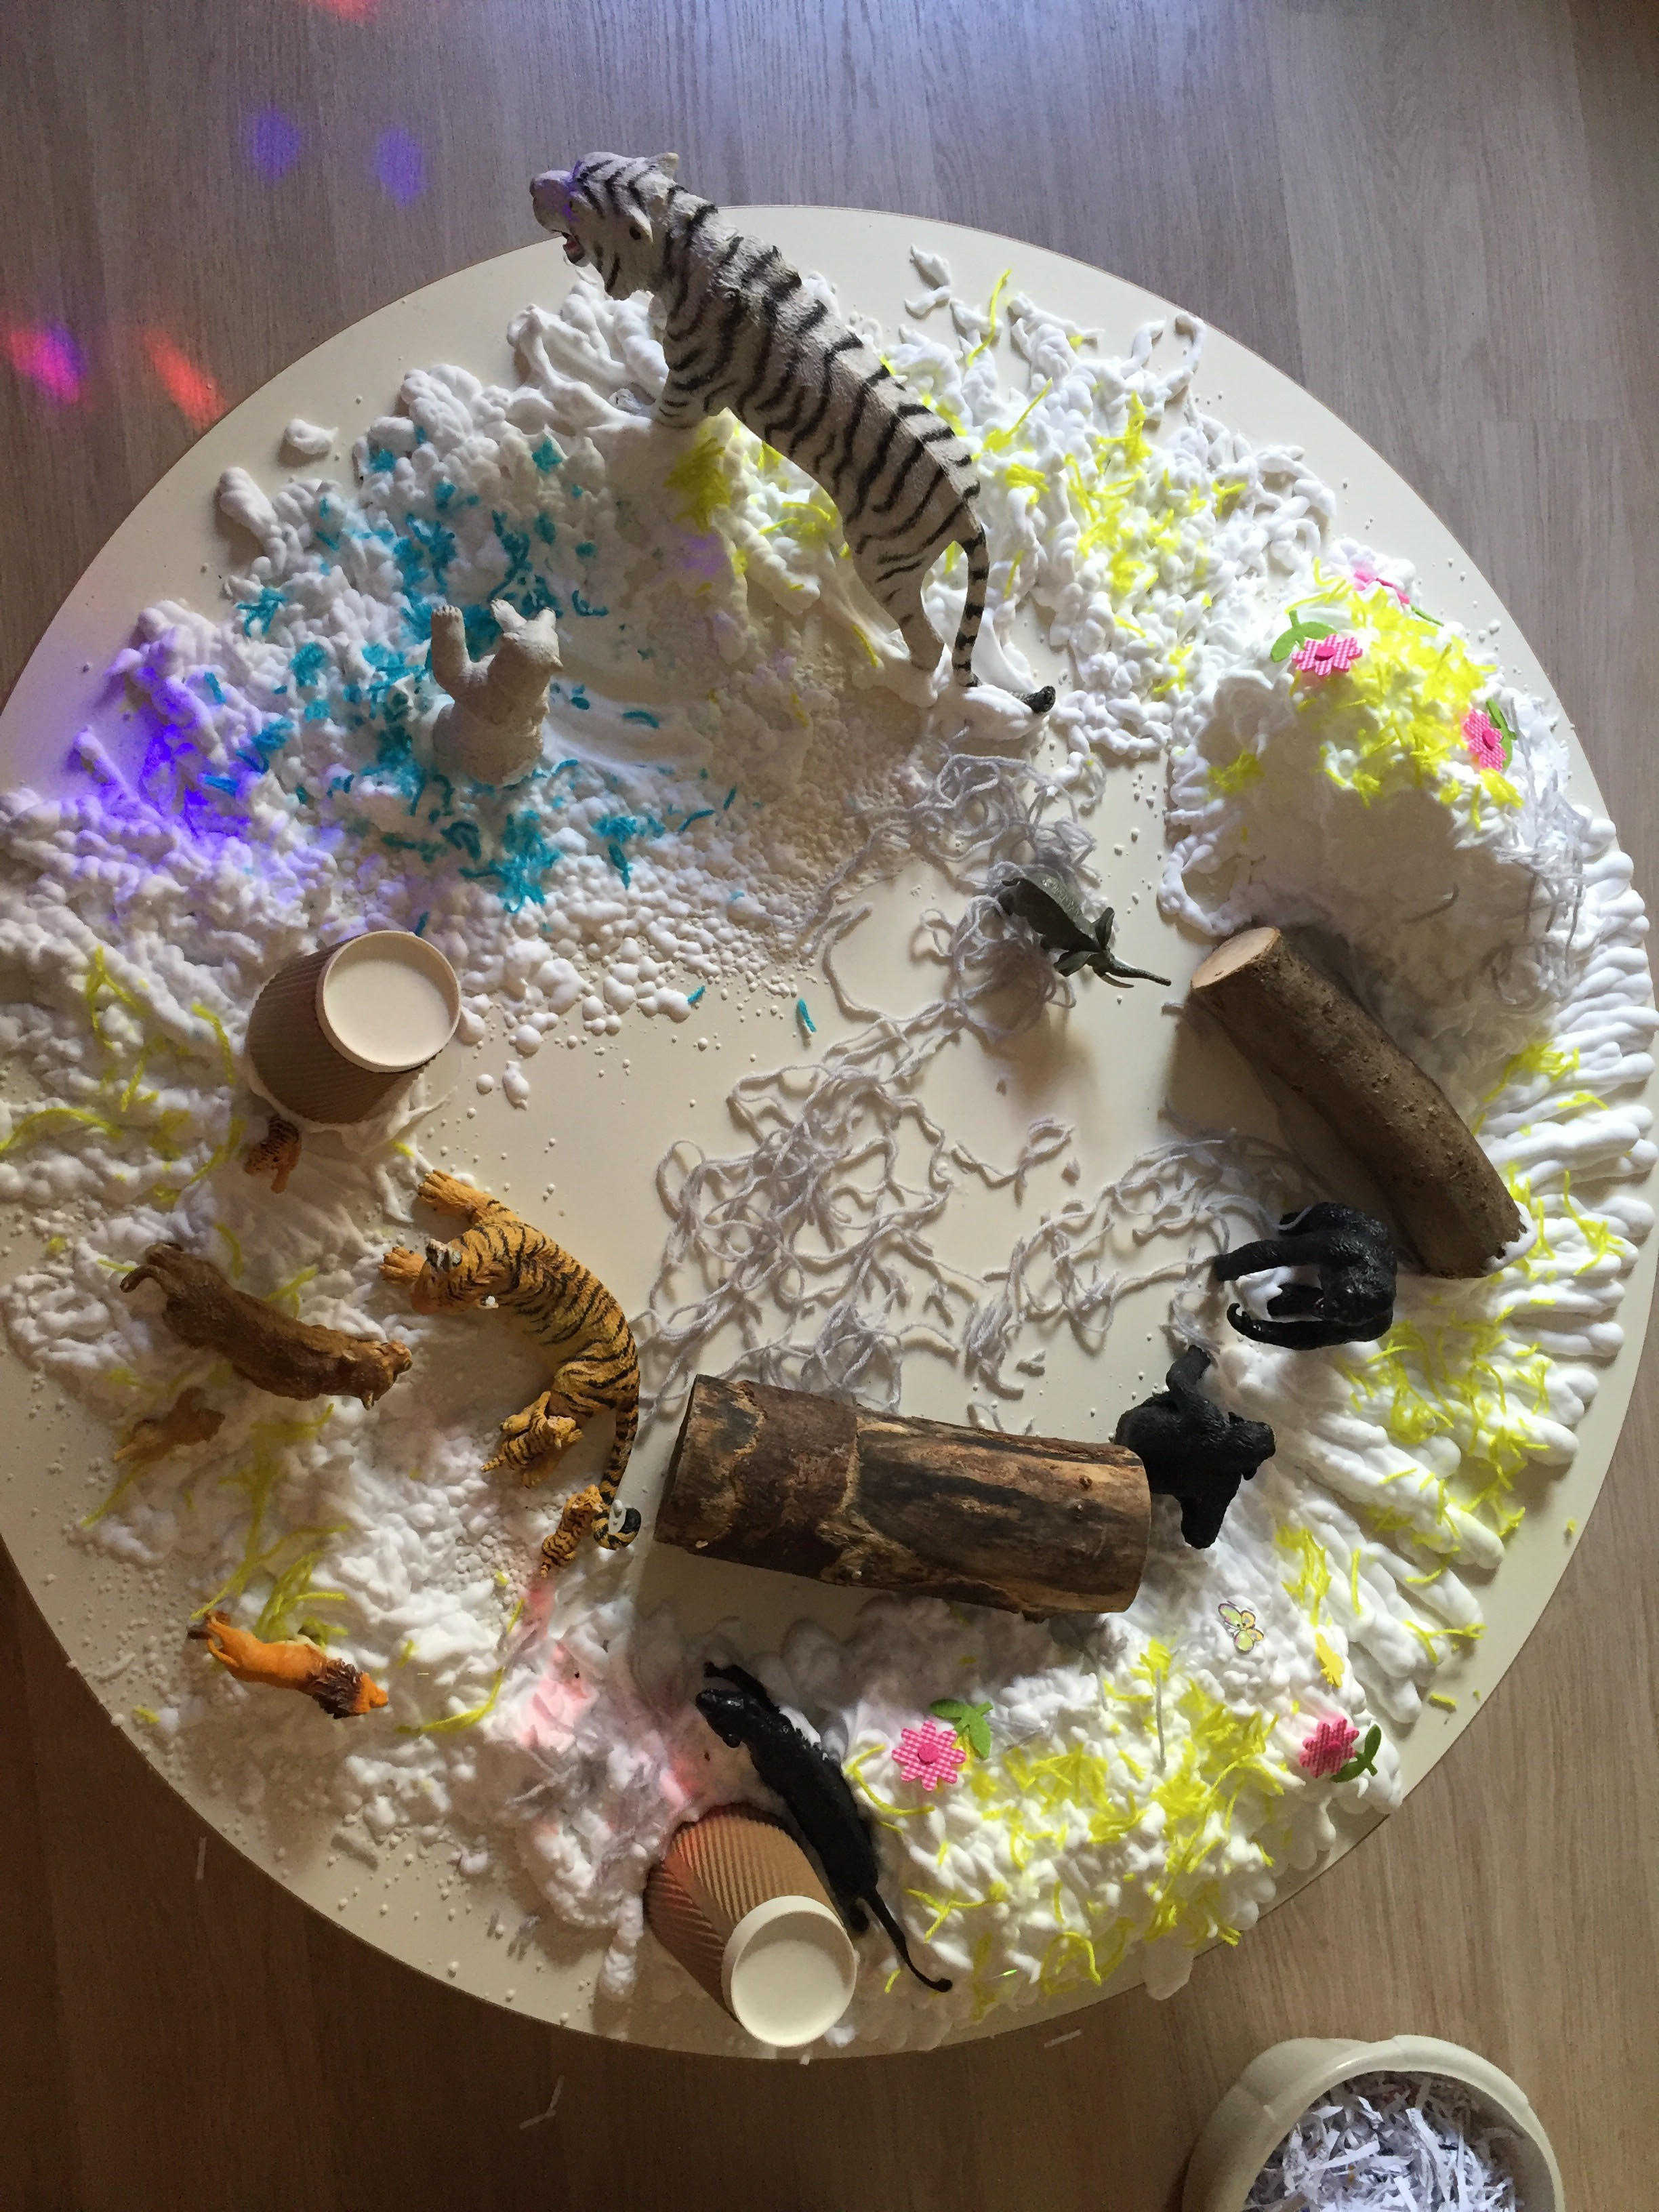 LX-provocation-animals-and-shaving-foam-1